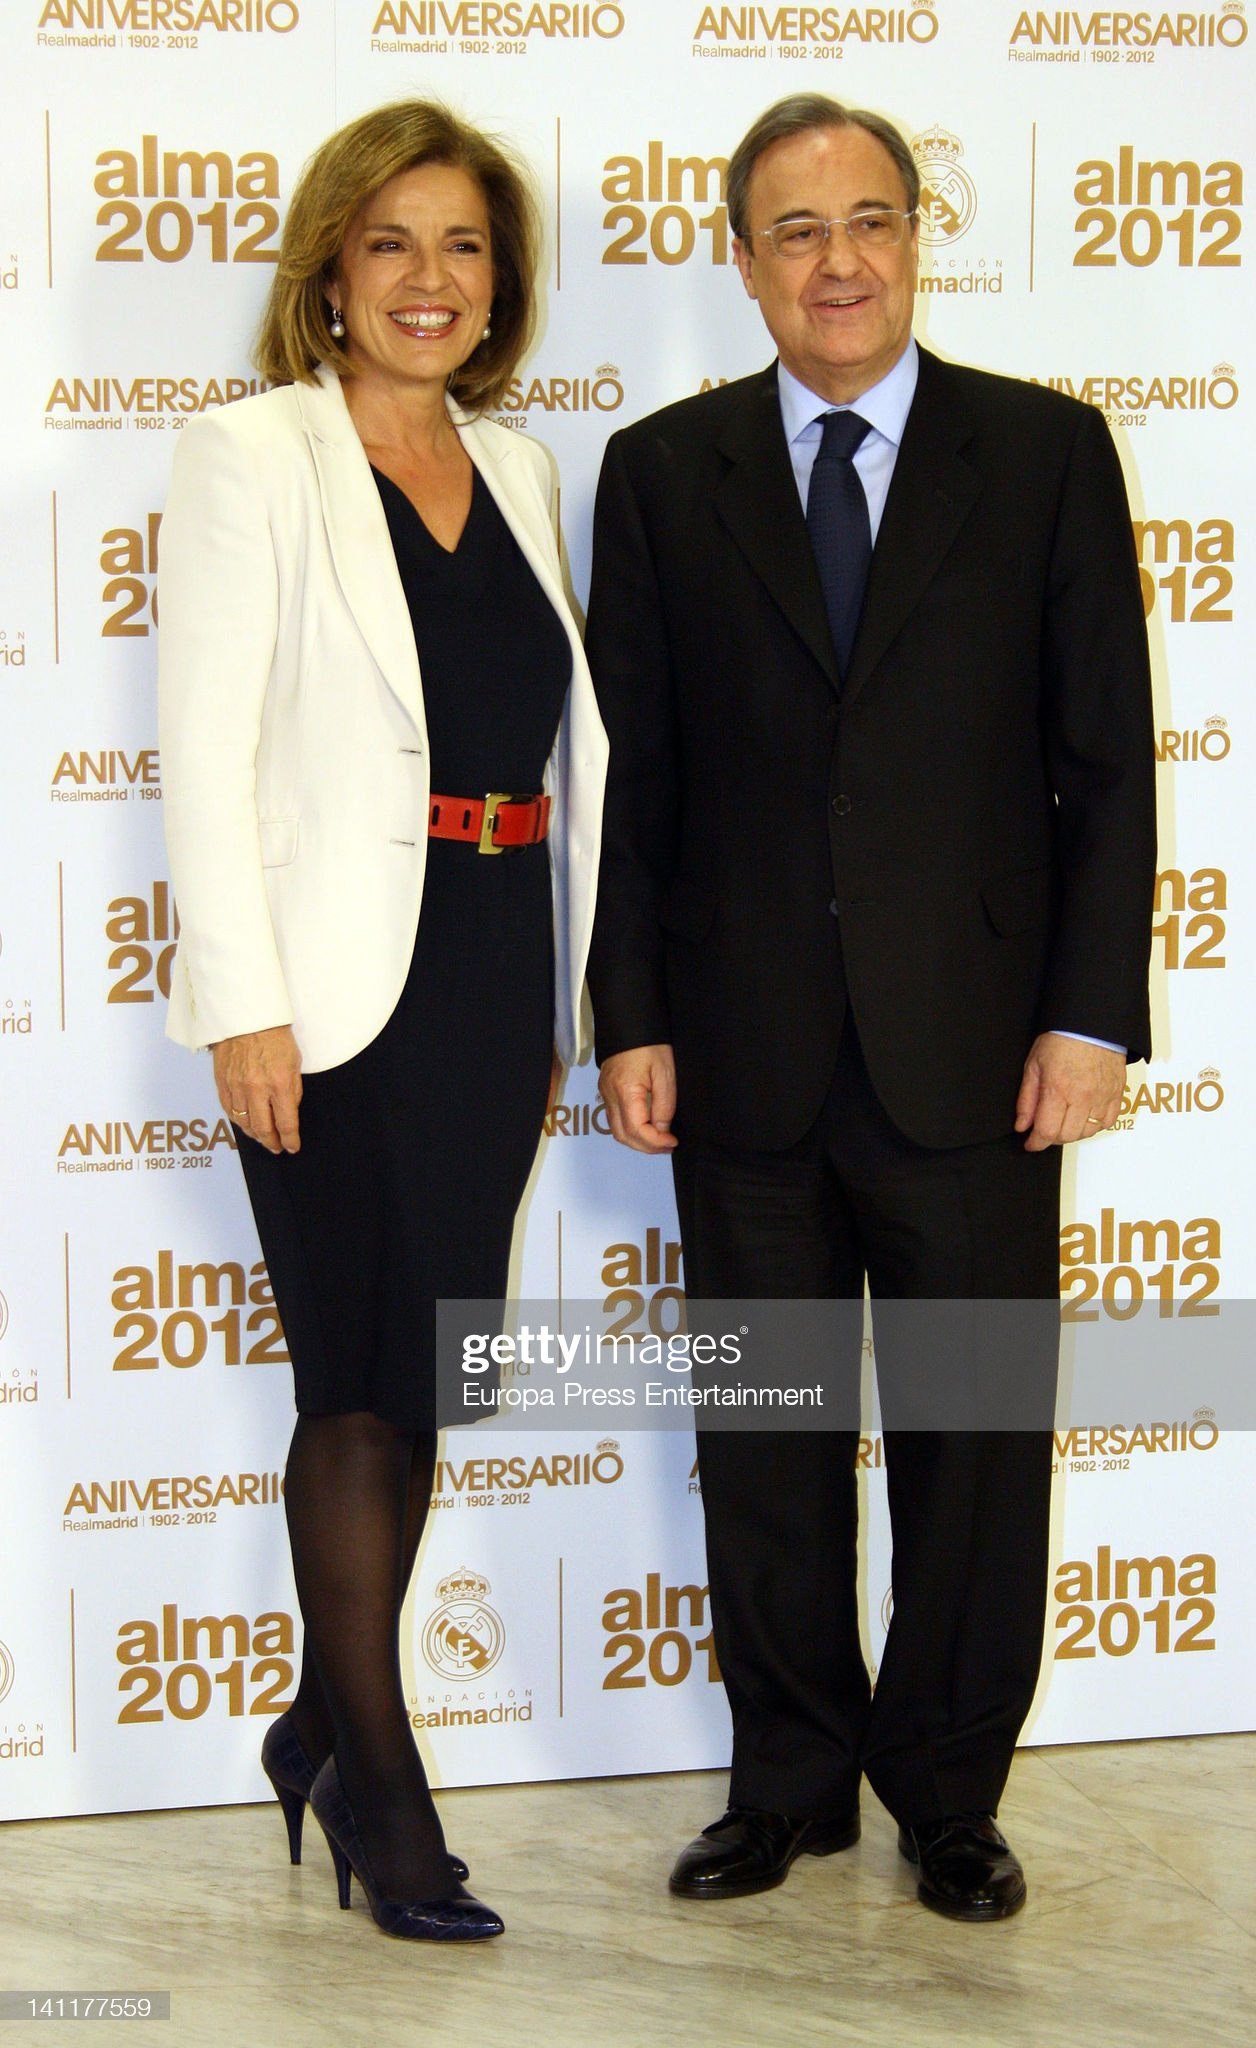 ¿Cuánto mide Florentino Pérez? - Altura - Real height - Página 2 Ana-botella-and-florentino-fernandez-attend-alma-awards-by-real-at-picture-id141177559?s=2048x2048